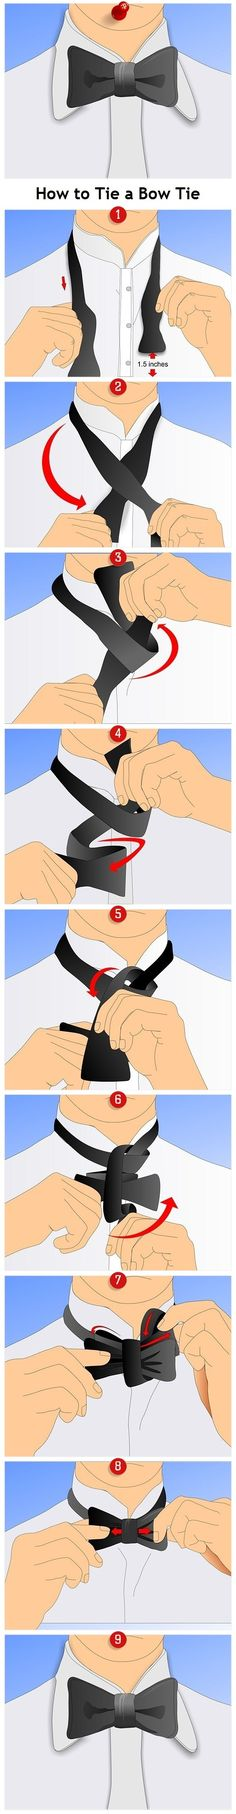 How to Make bow ties easily